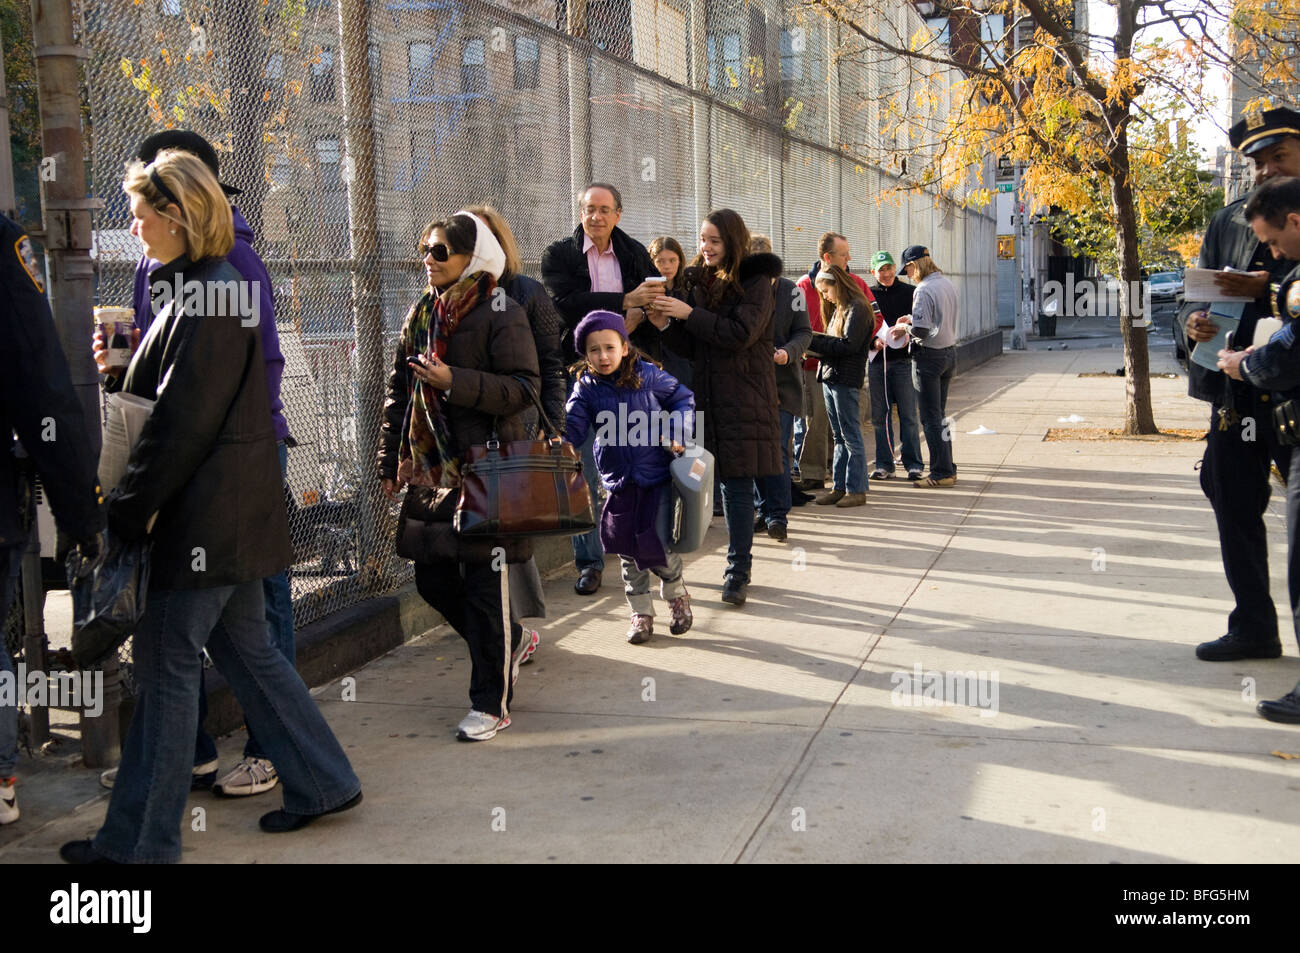 Children accompanied by parents and guardians line up to receive the free H1N1 influenza vaccine - Stock Image